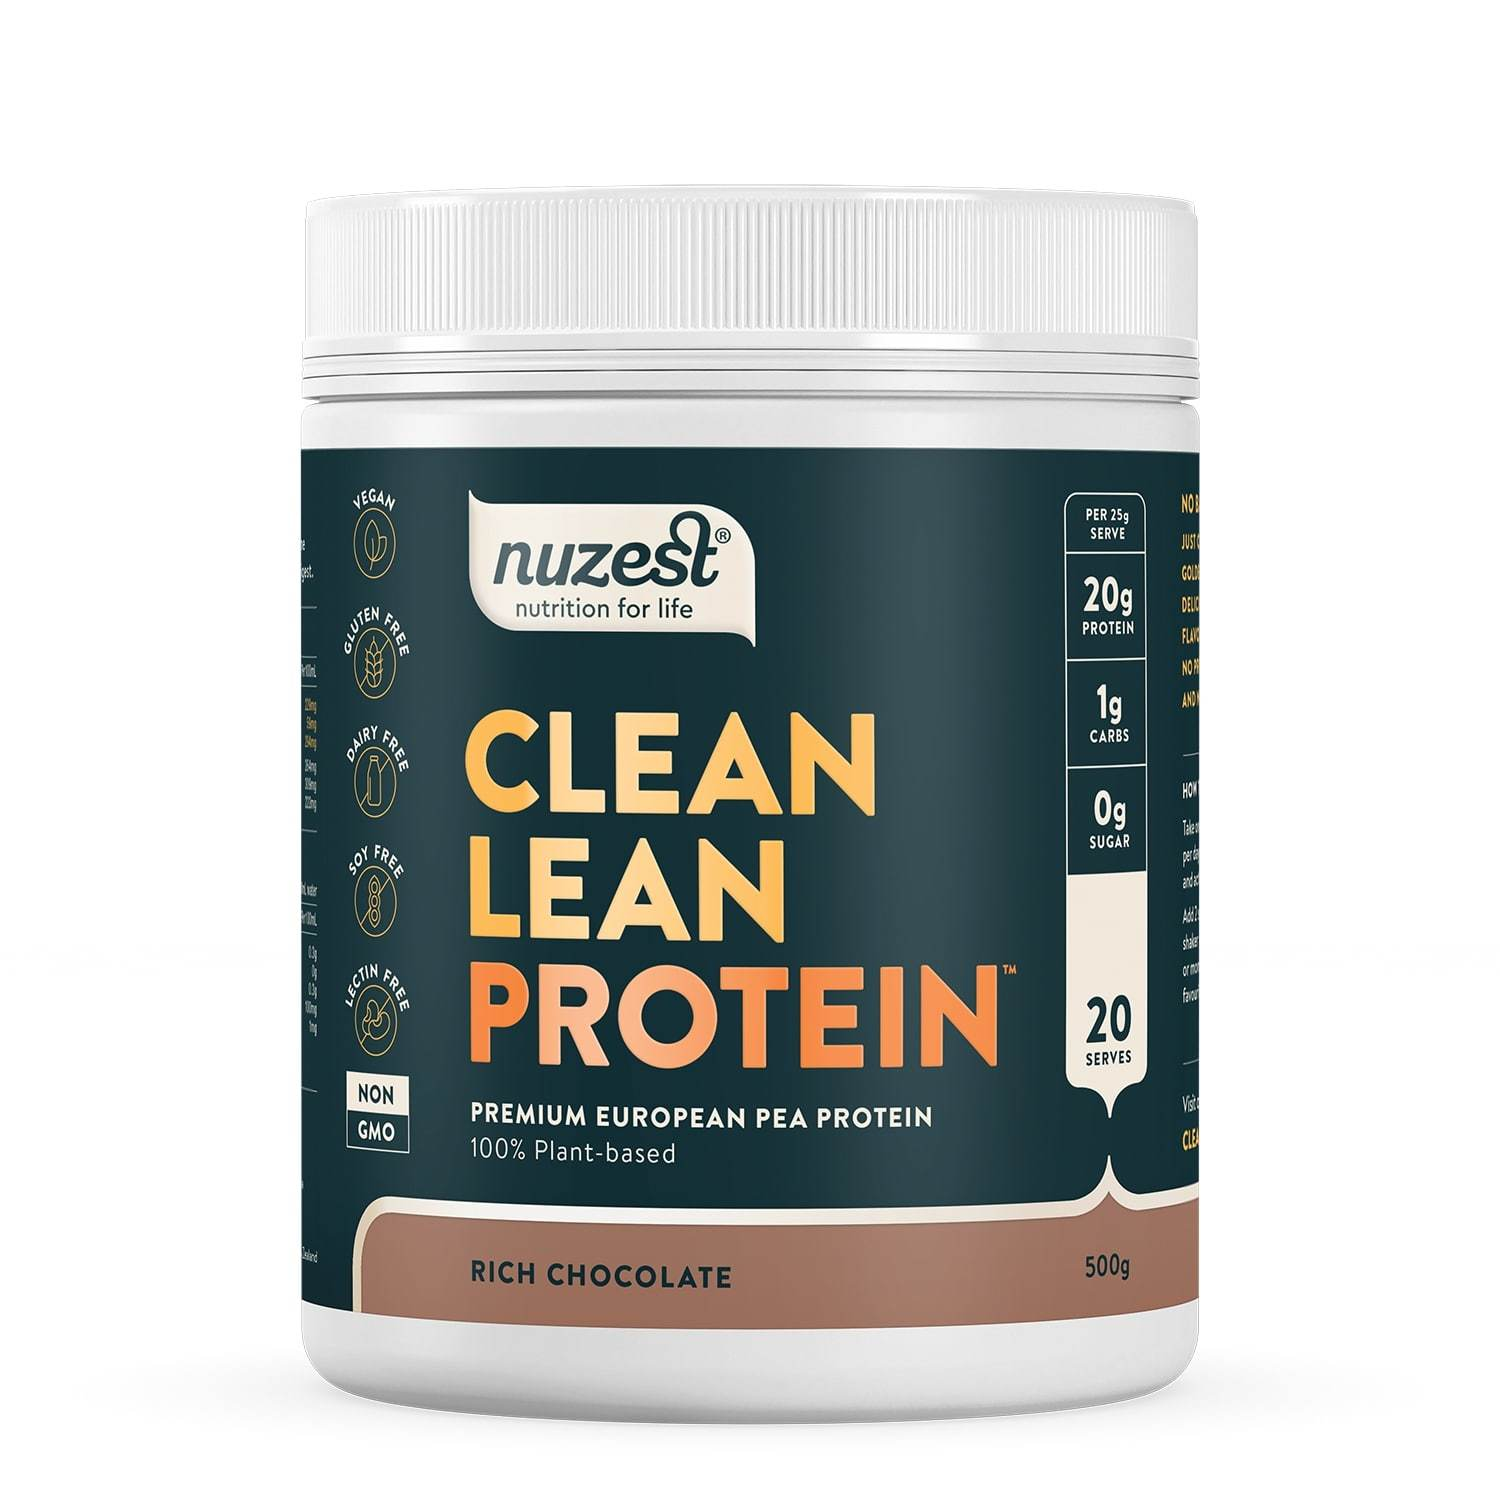 Clean Lean Plant Based Protein - Rich Chocolate (500g) image